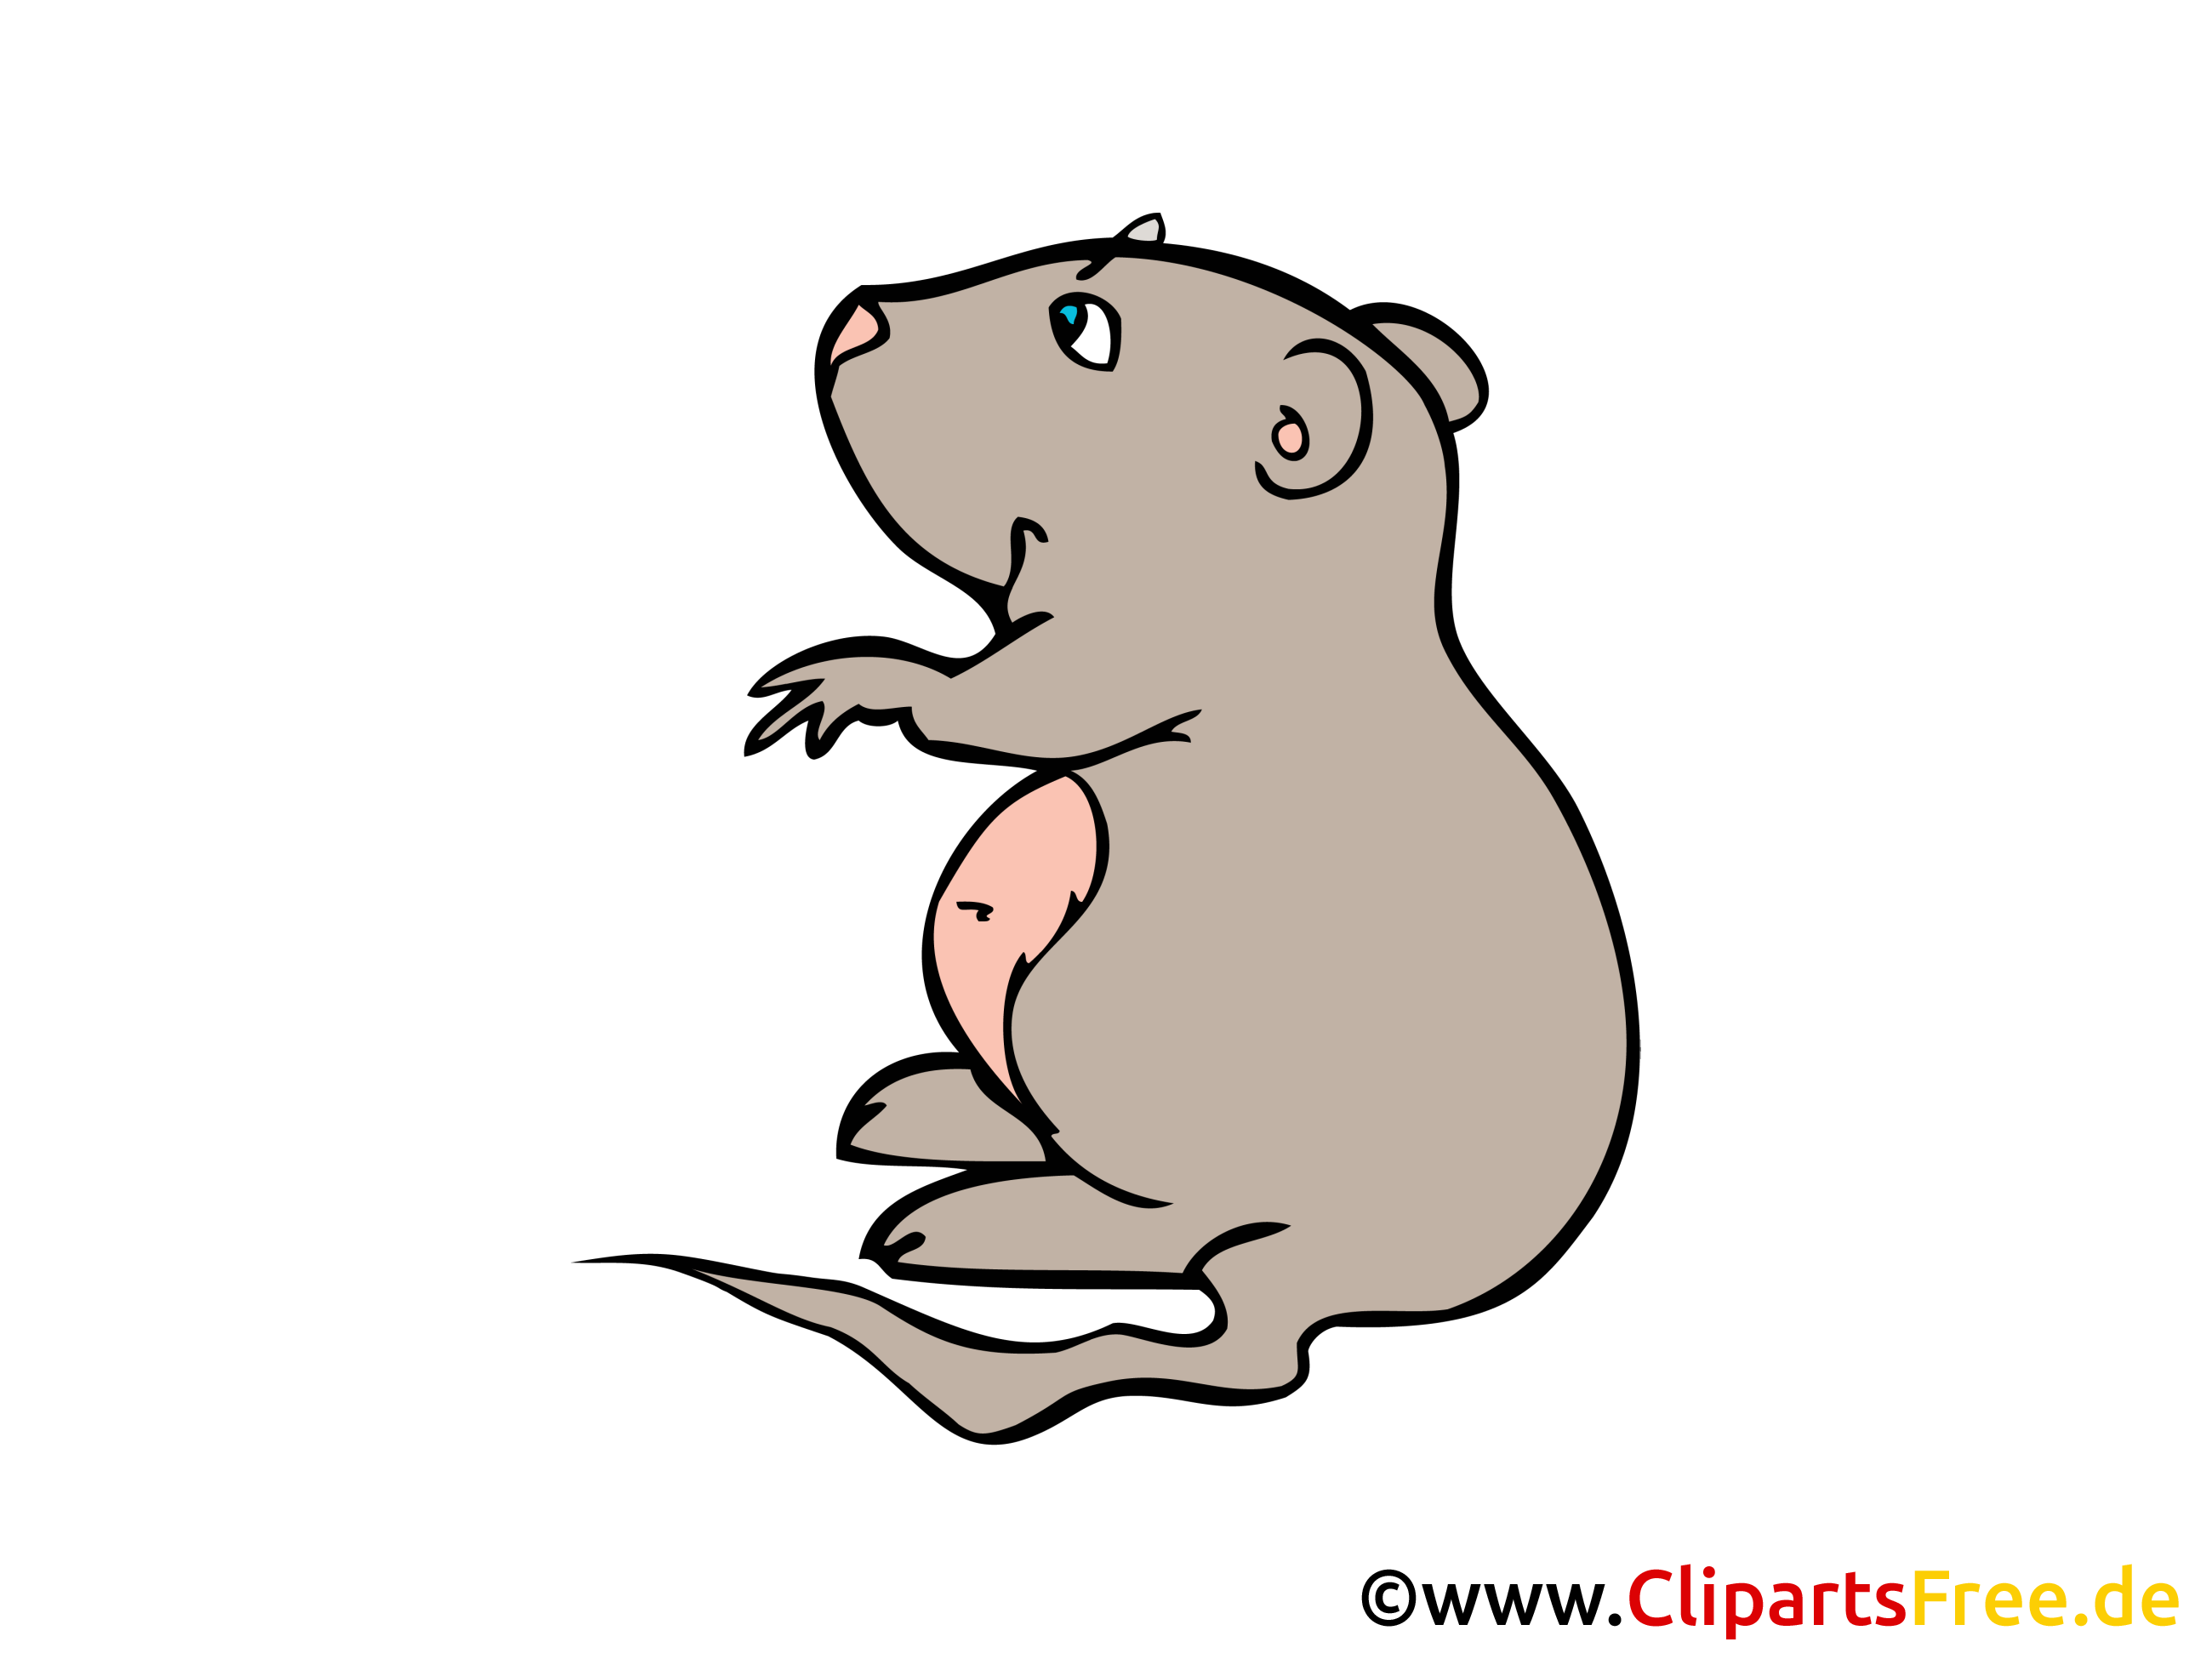 Hamster Cliparts free